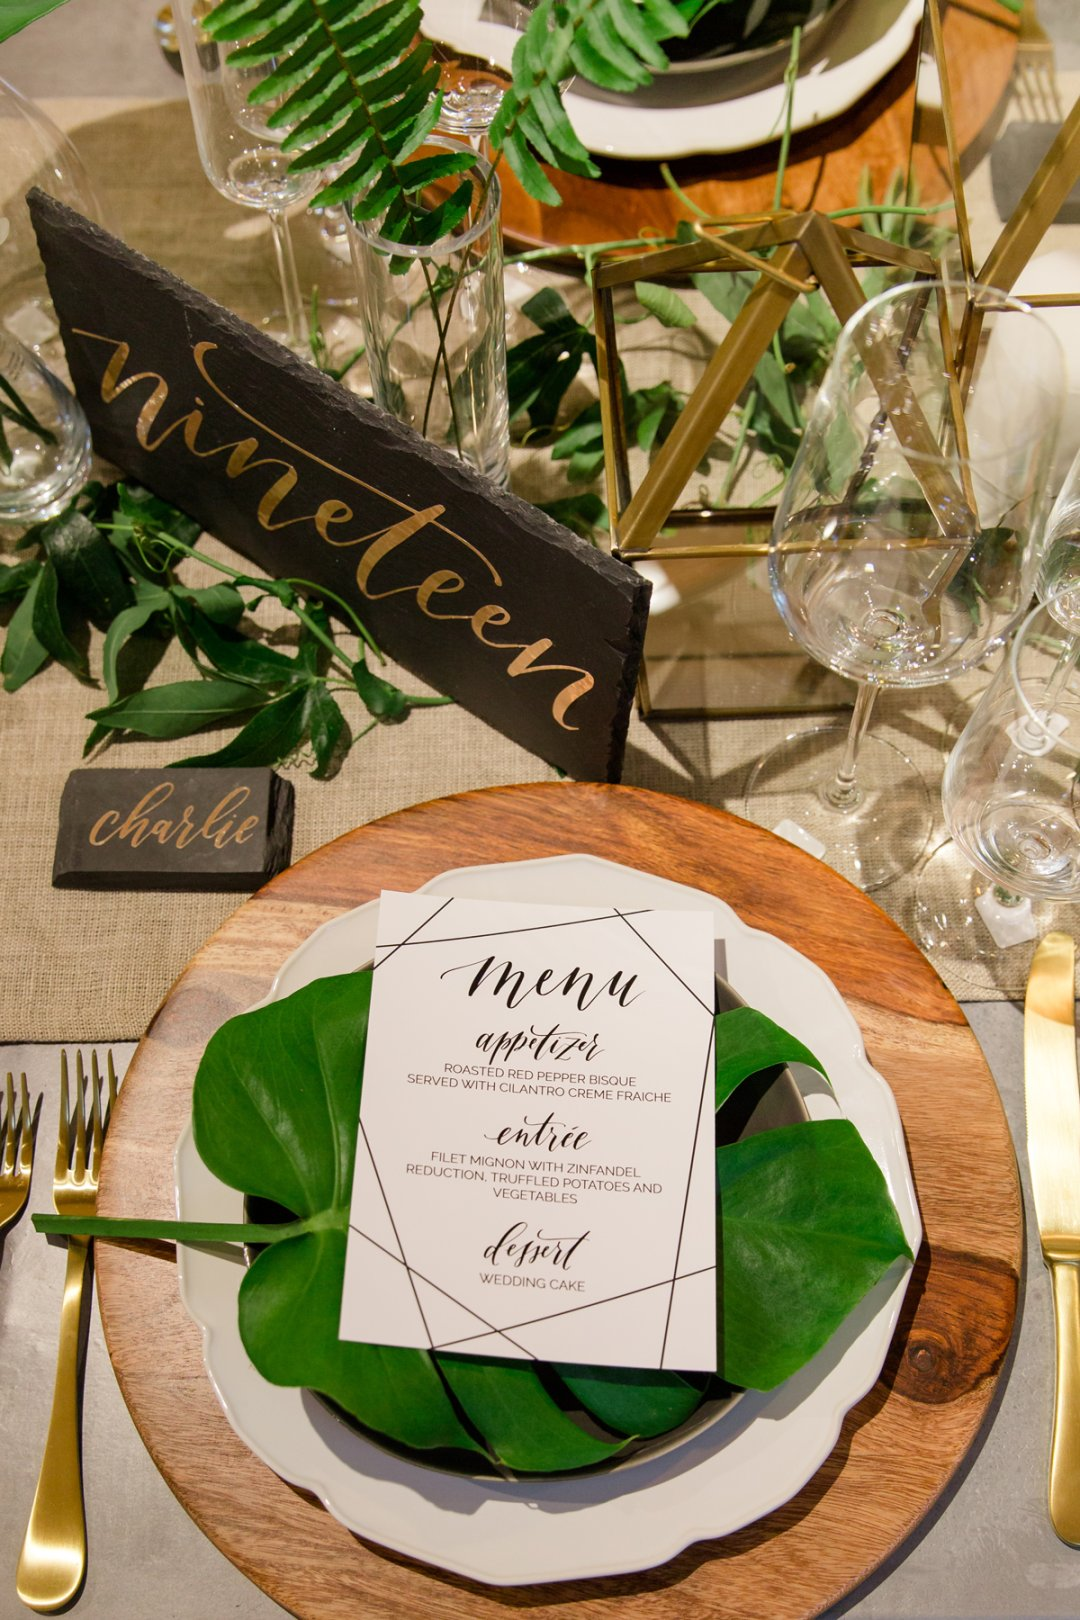 Placesetting at table